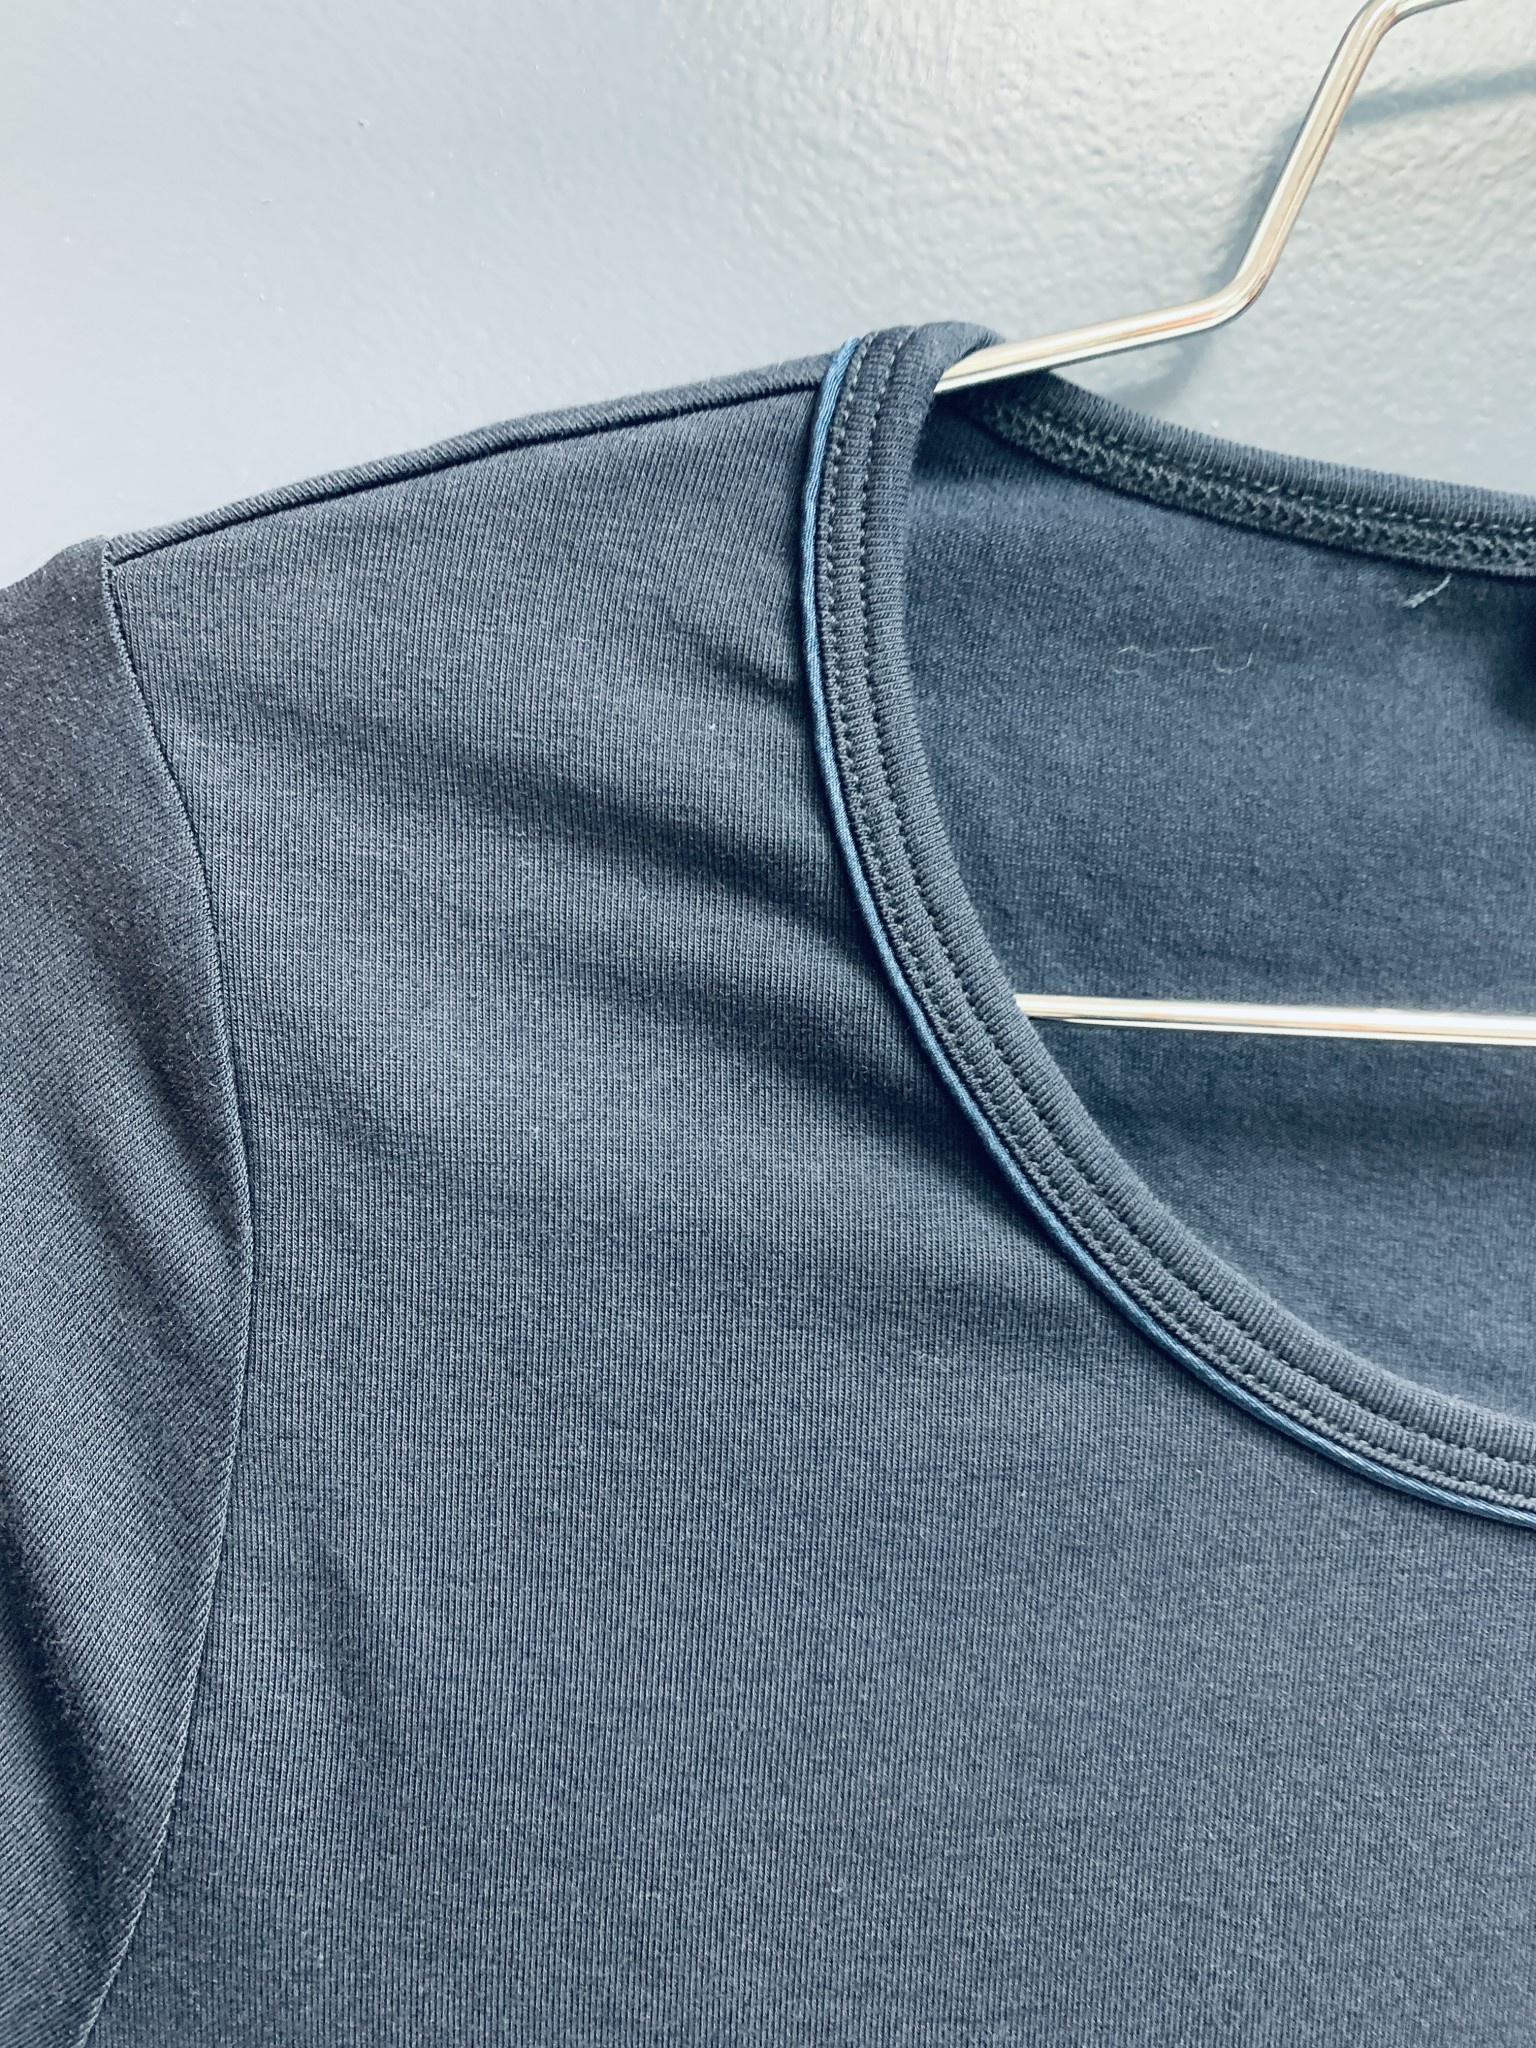 Crew Neck Shirt with Satin Piping - Navy